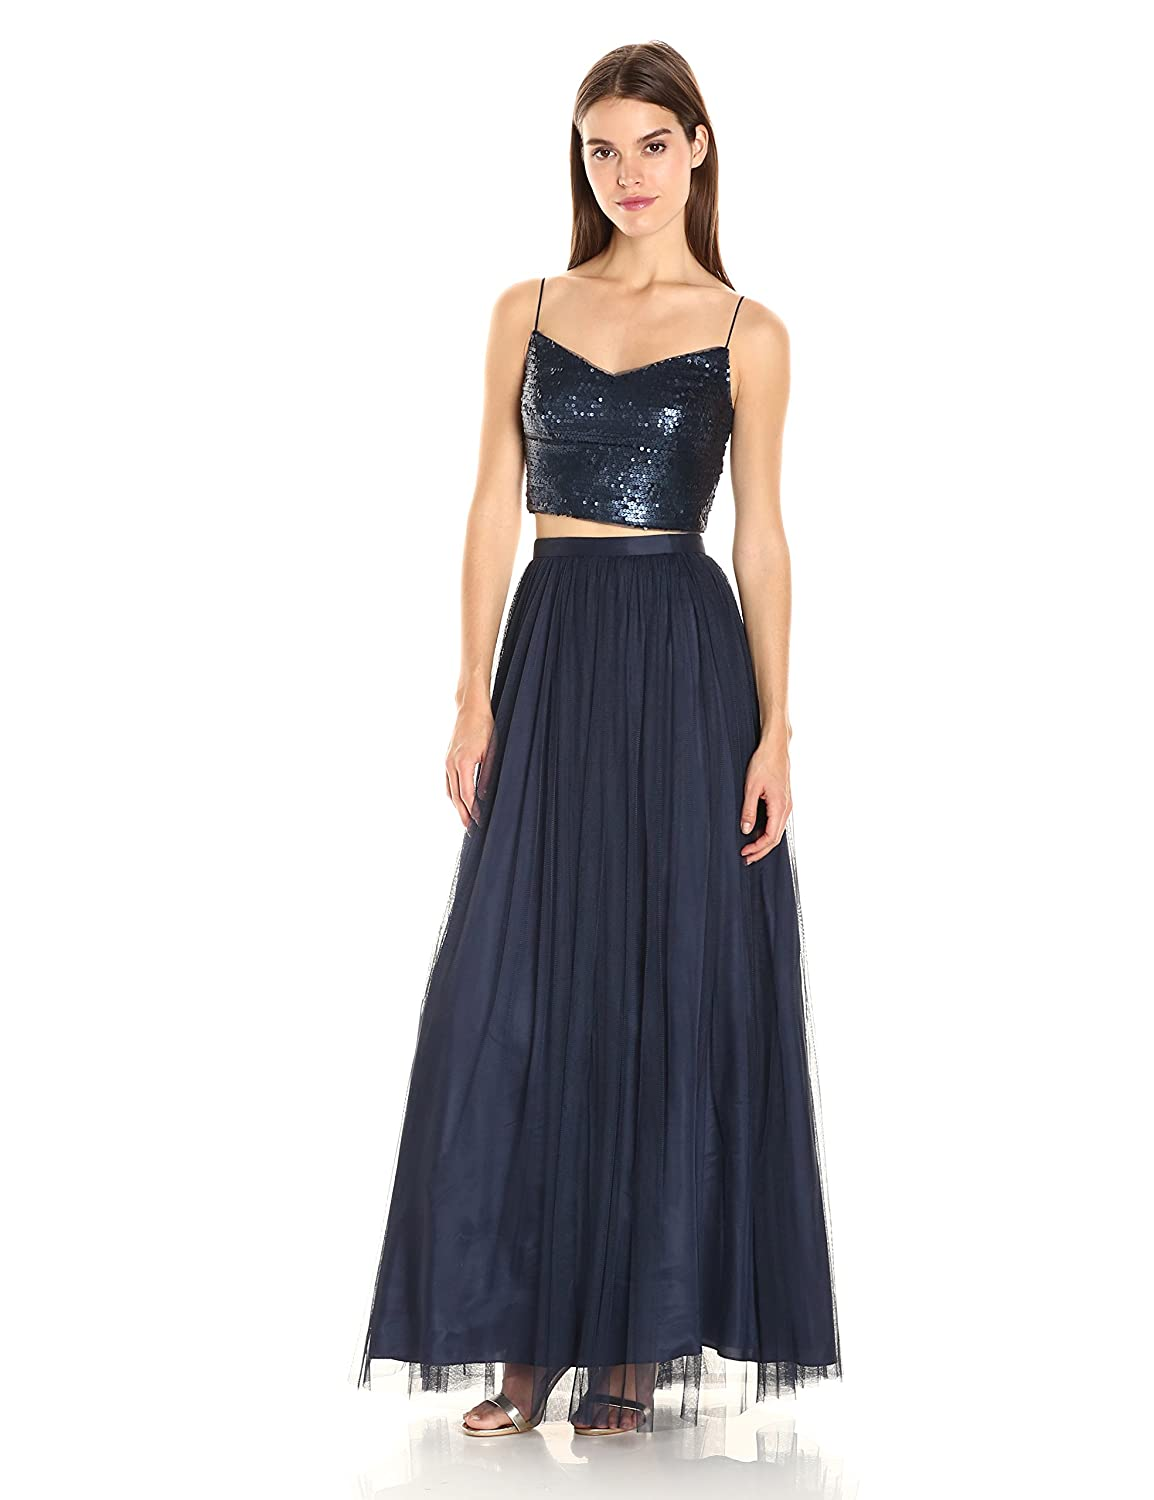 75377197345 Adrianna Papell Women's Spaghetti Strap Sequin Crop Top with Tulle Skirt:  Amazon.in: Clothing & Accessories